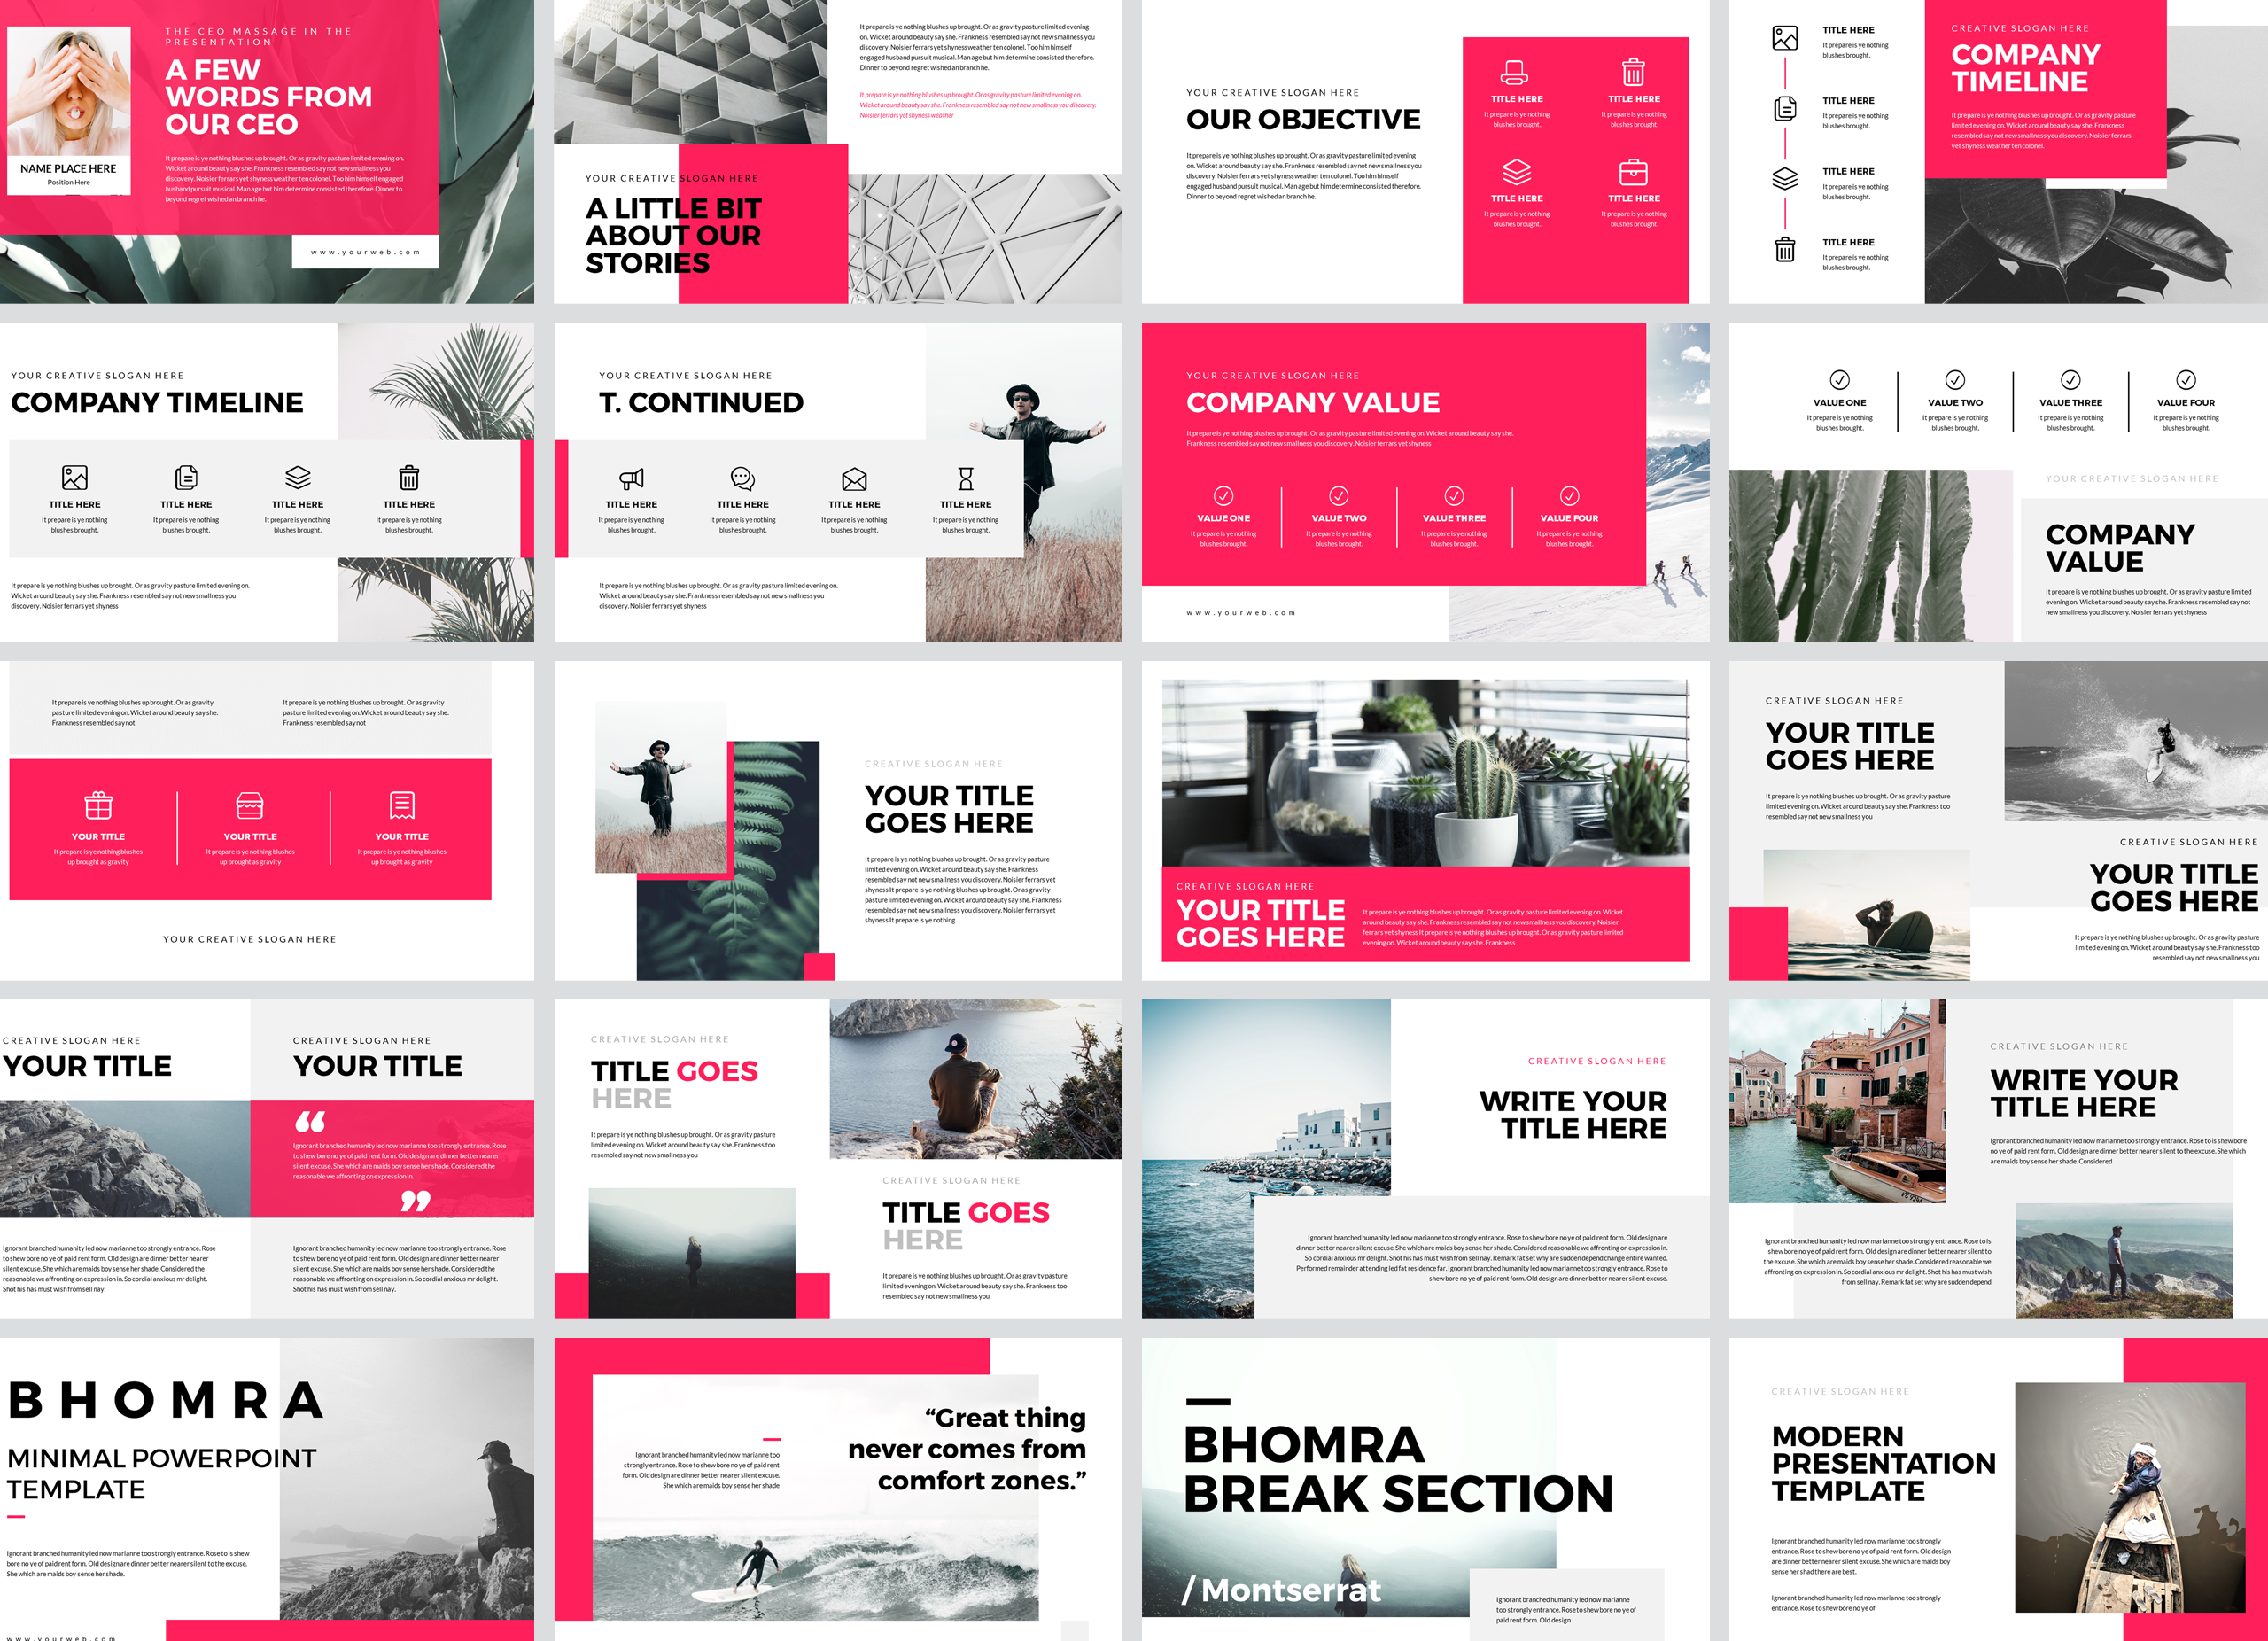 Bhomra Minimal Powerpoint Presentation Template example image 2